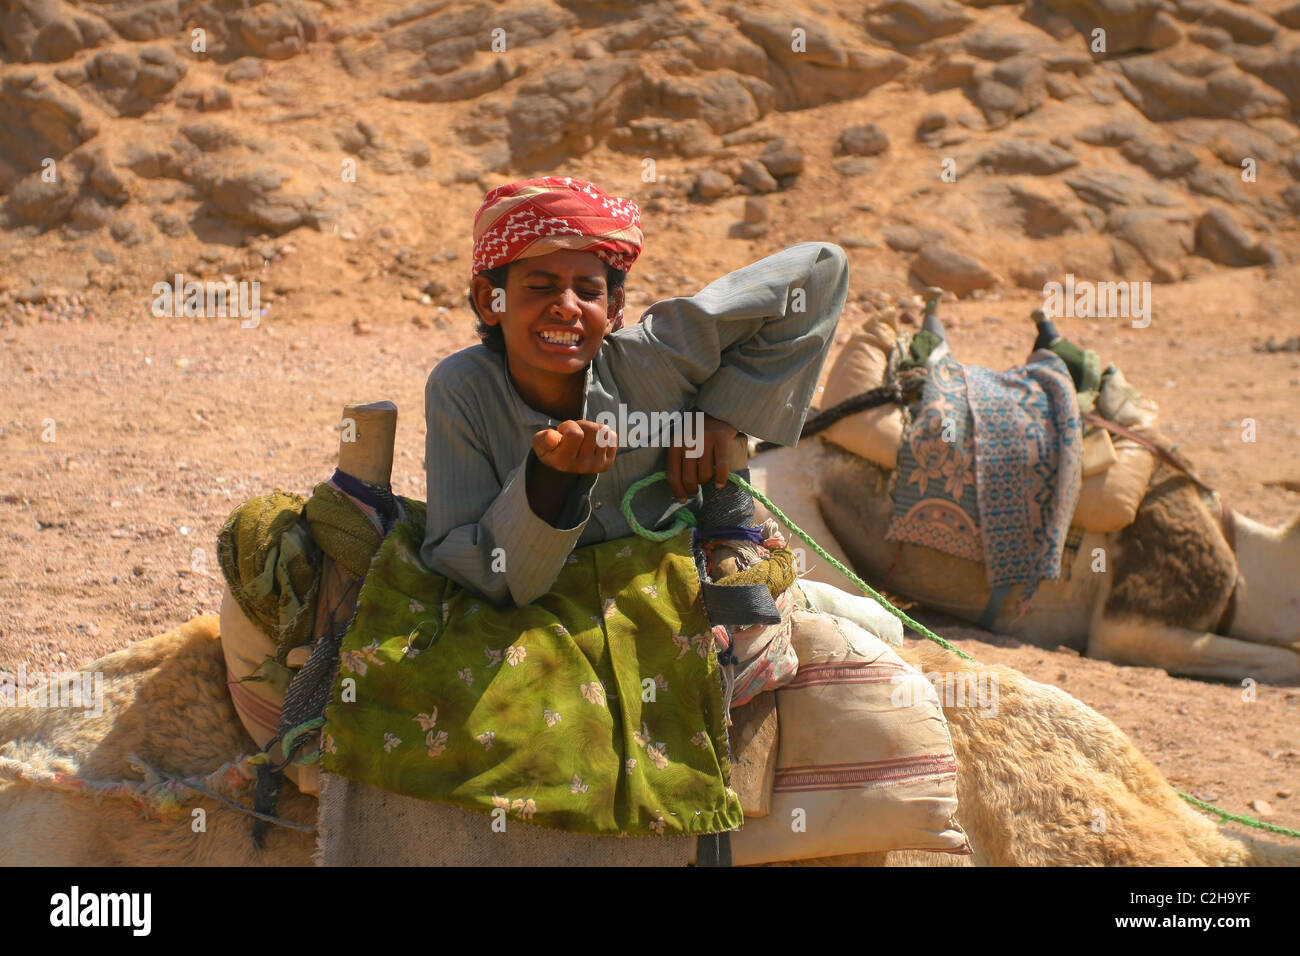 Bedouin boy cameleer laughs with her ​​eyes closed. Desert, Egypt. - Stock Image